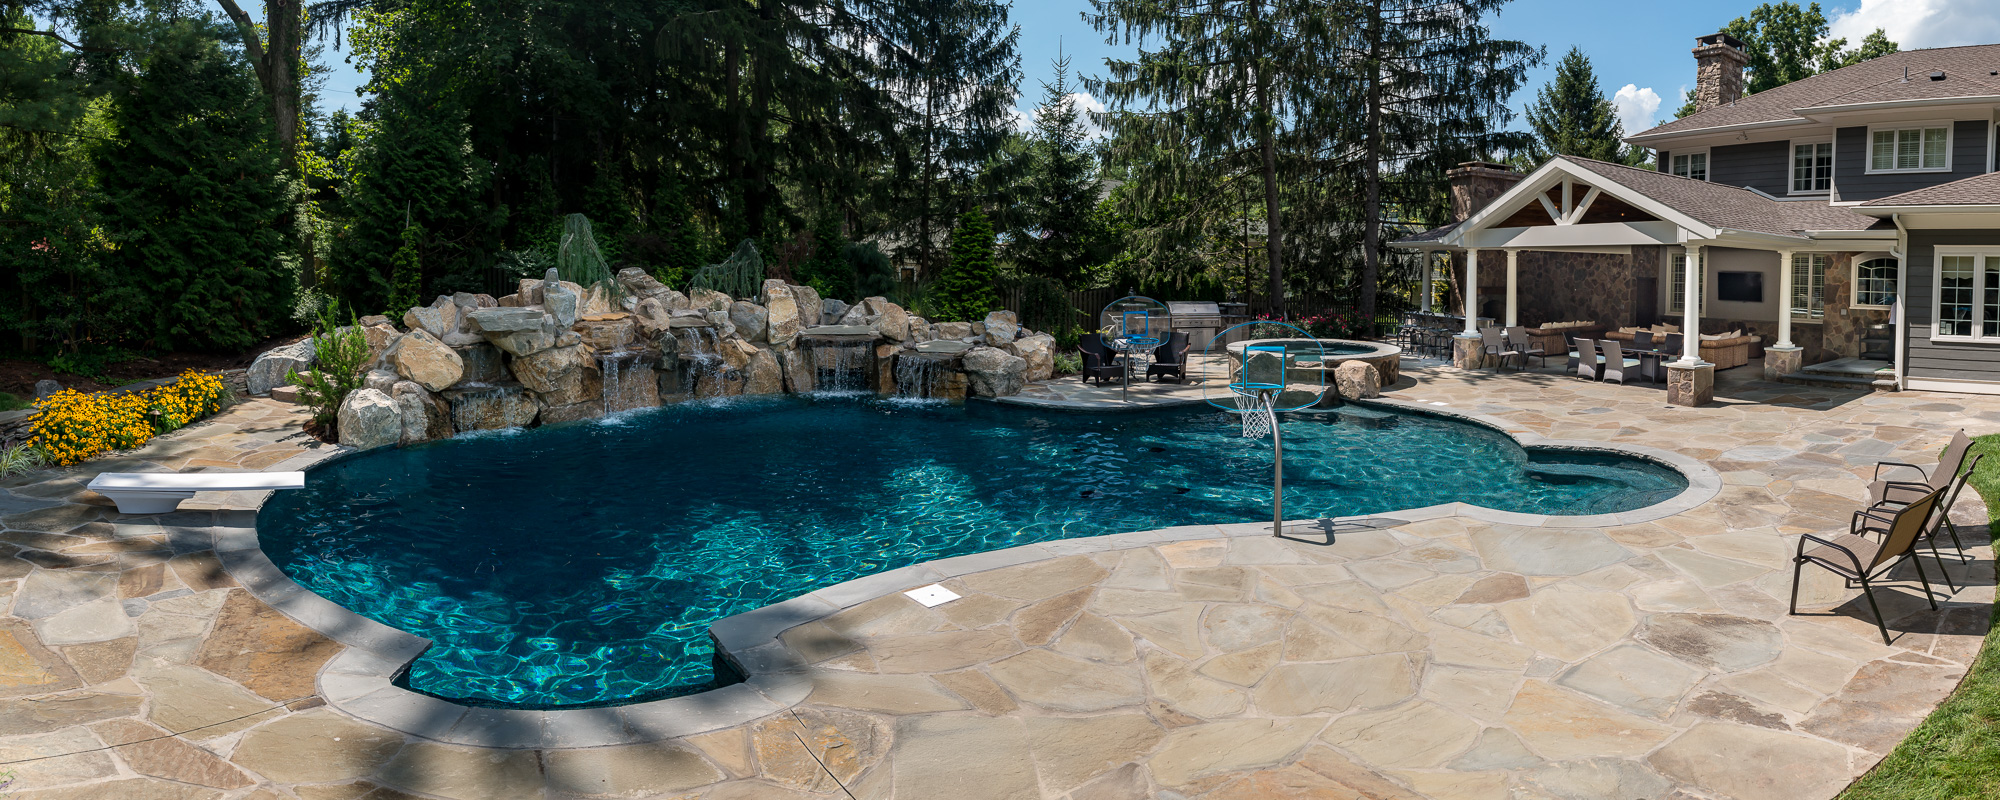 New providence nj custom inground swimming pool design for Pool design hamilton nj